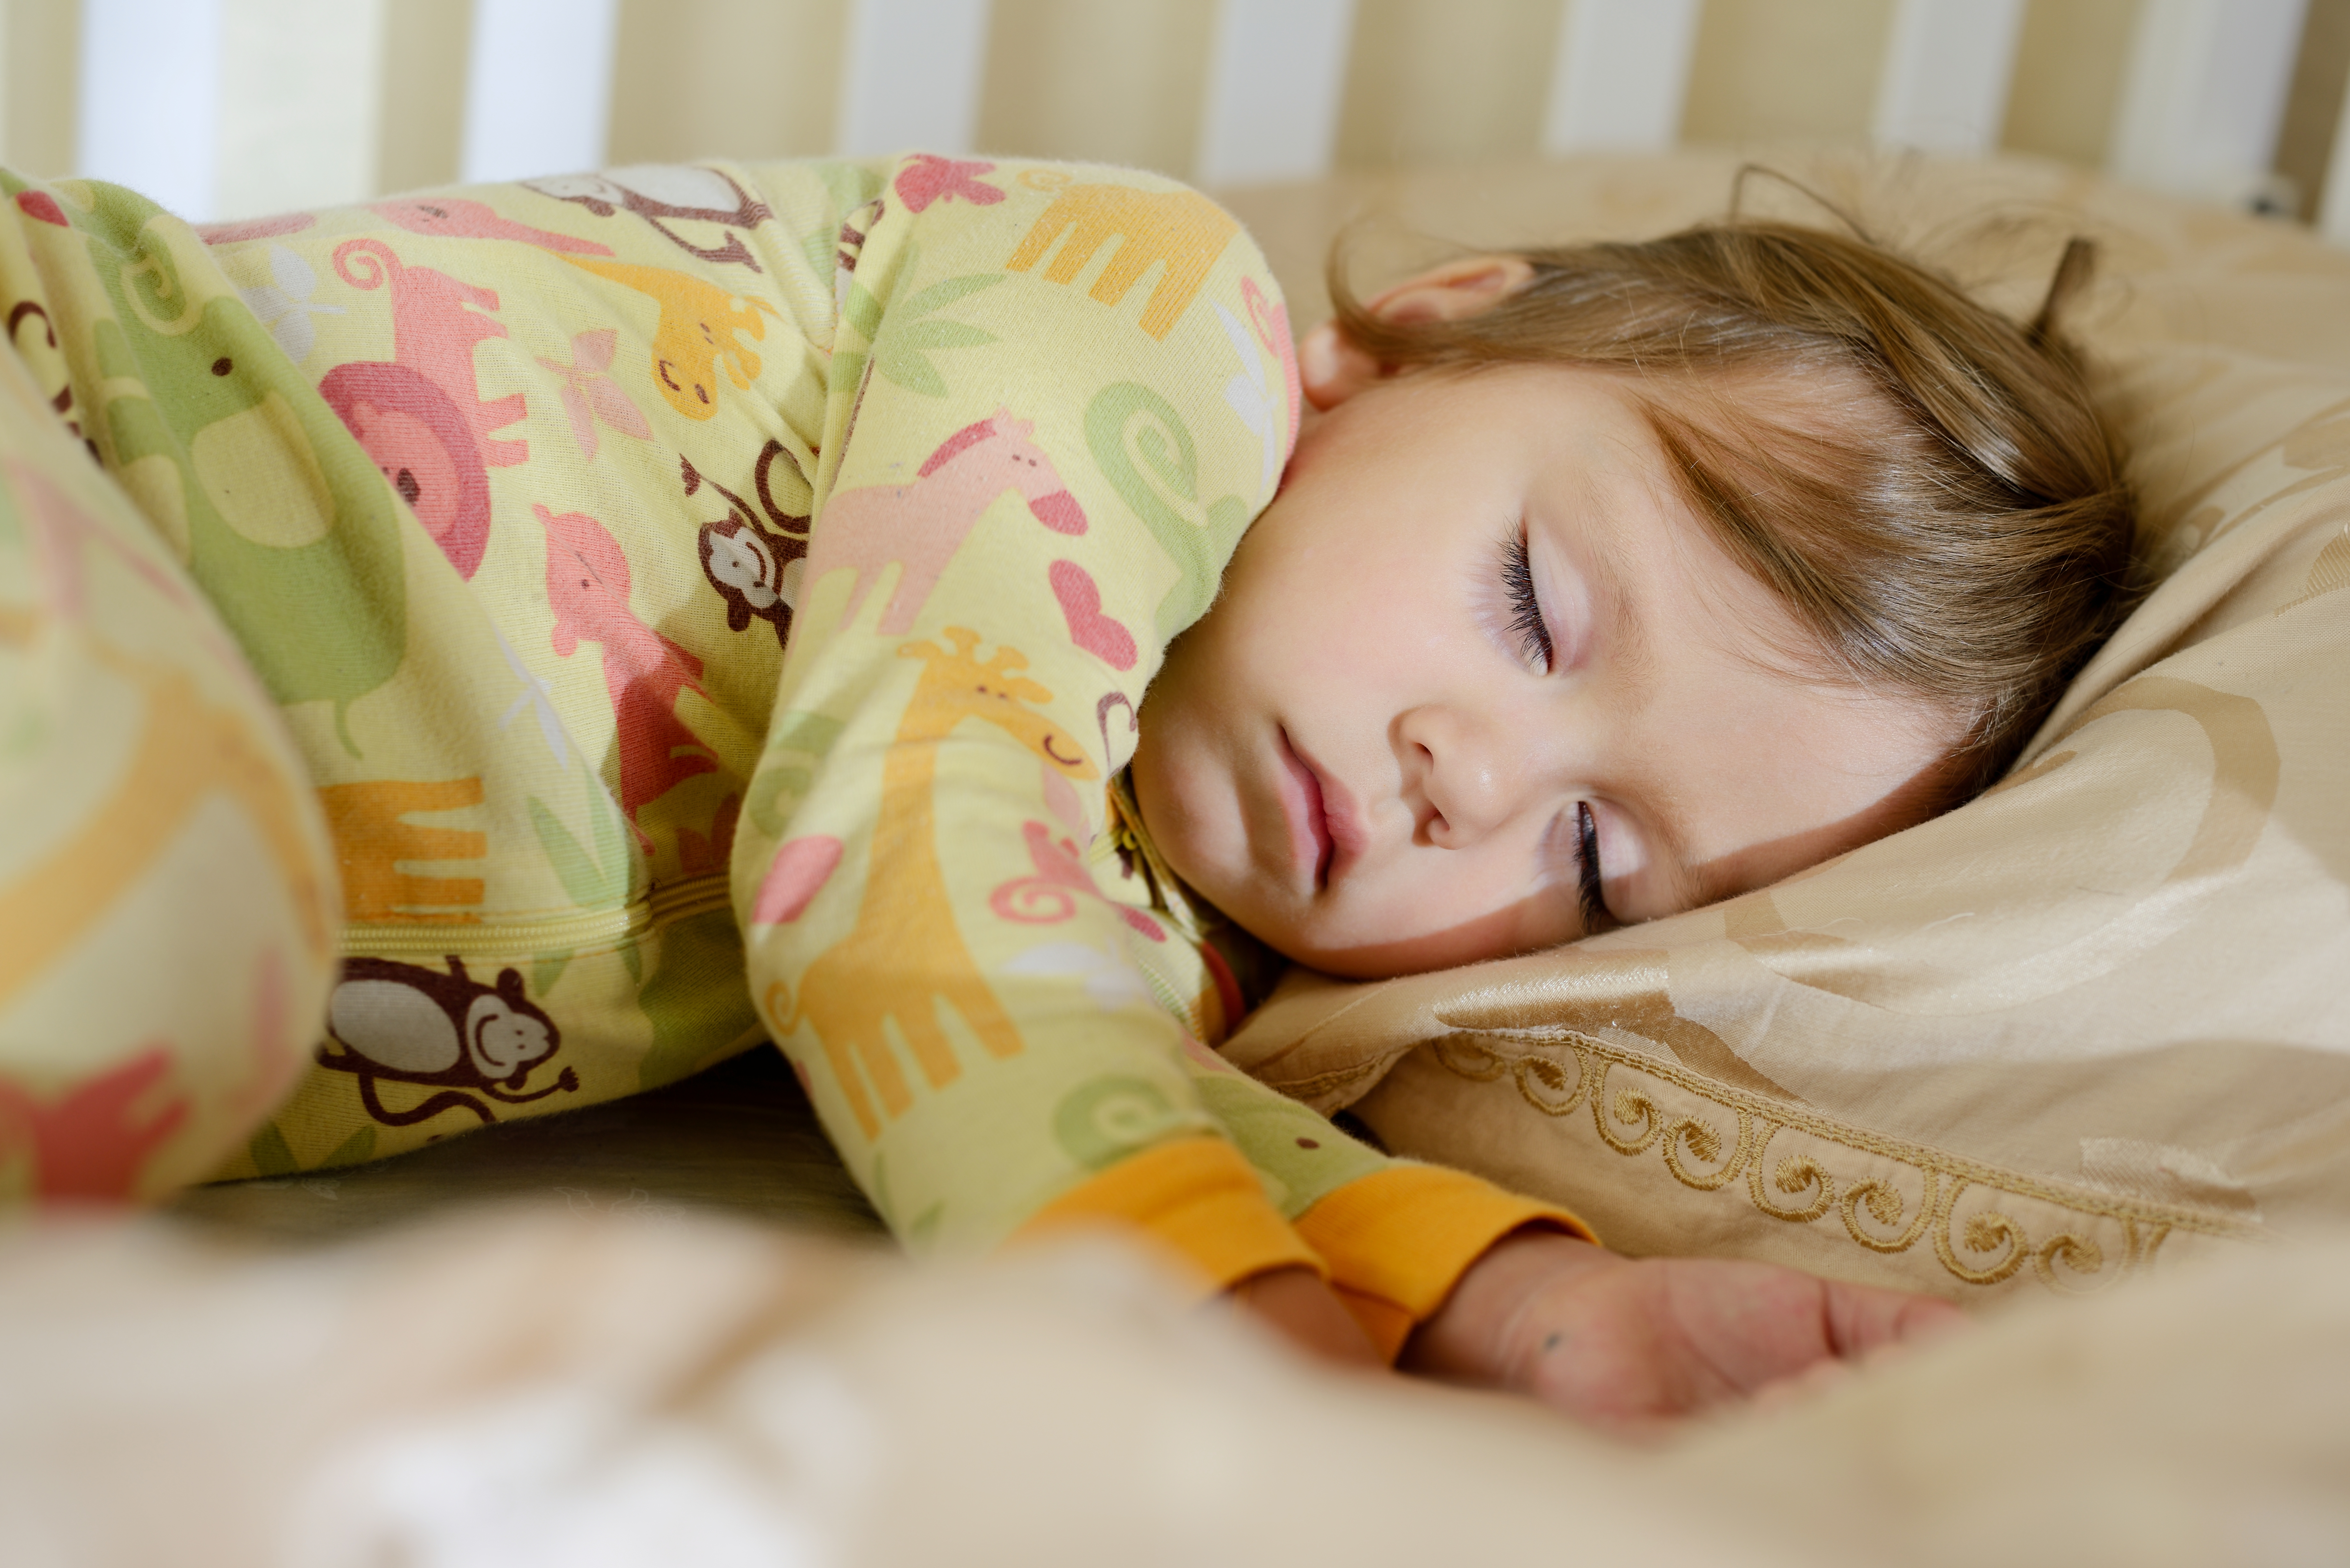 Toddler Bedtime – Helping Toddlers Stay in their Bed